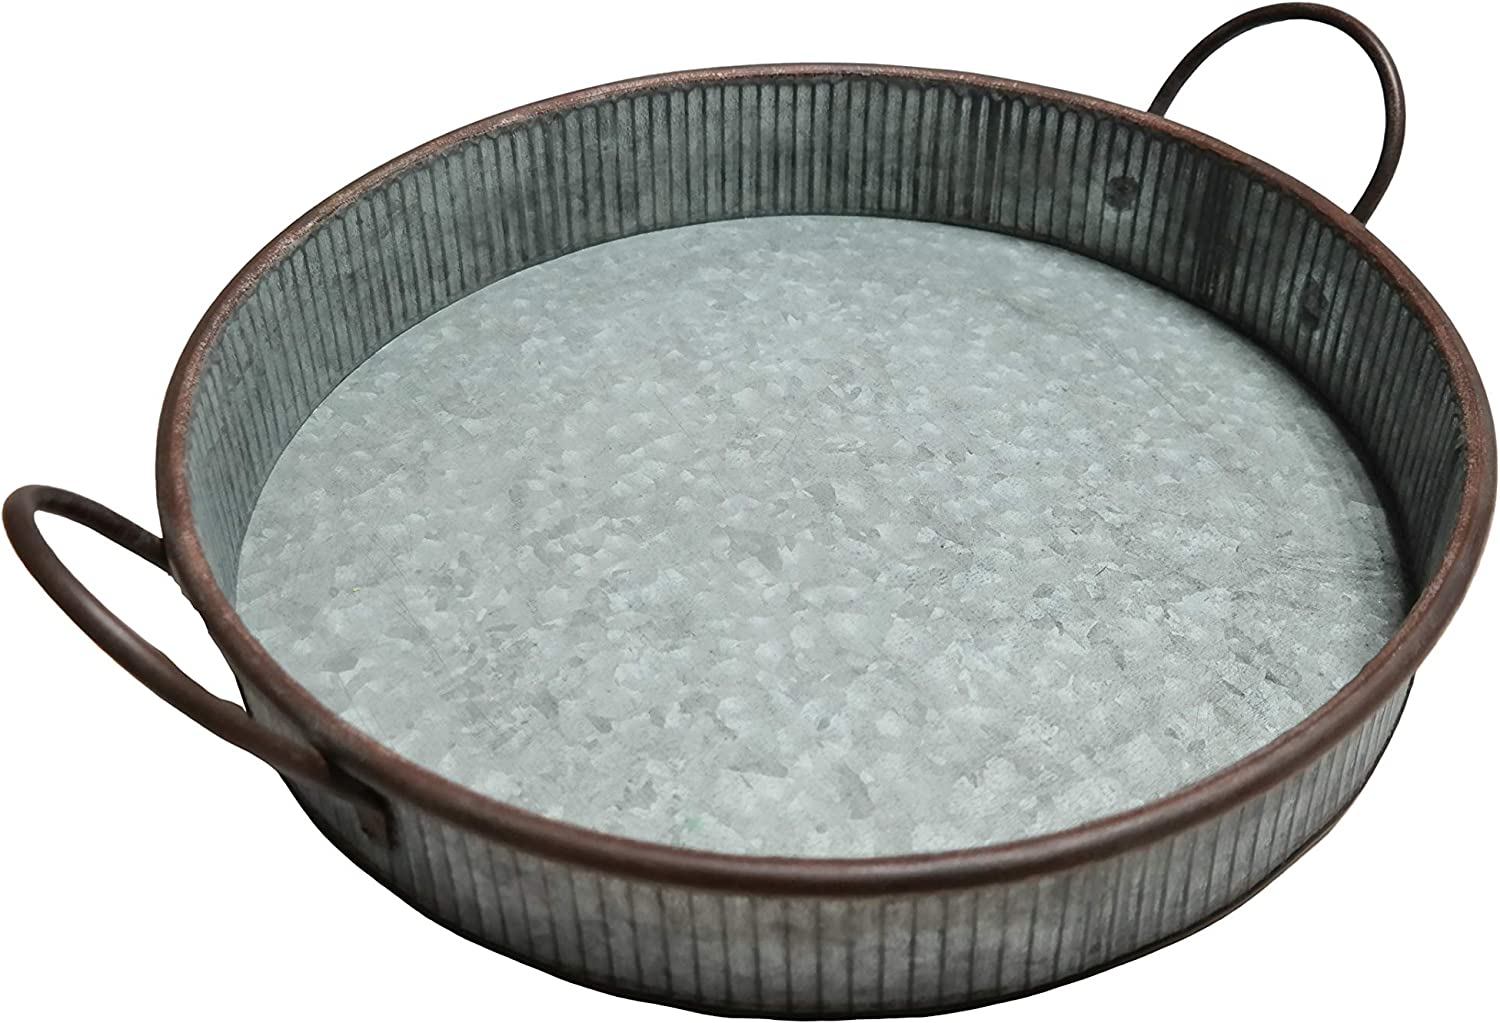 "MANDII Galvanized Round Serving Tray with Handles | 13"" Farmhouse Trays 